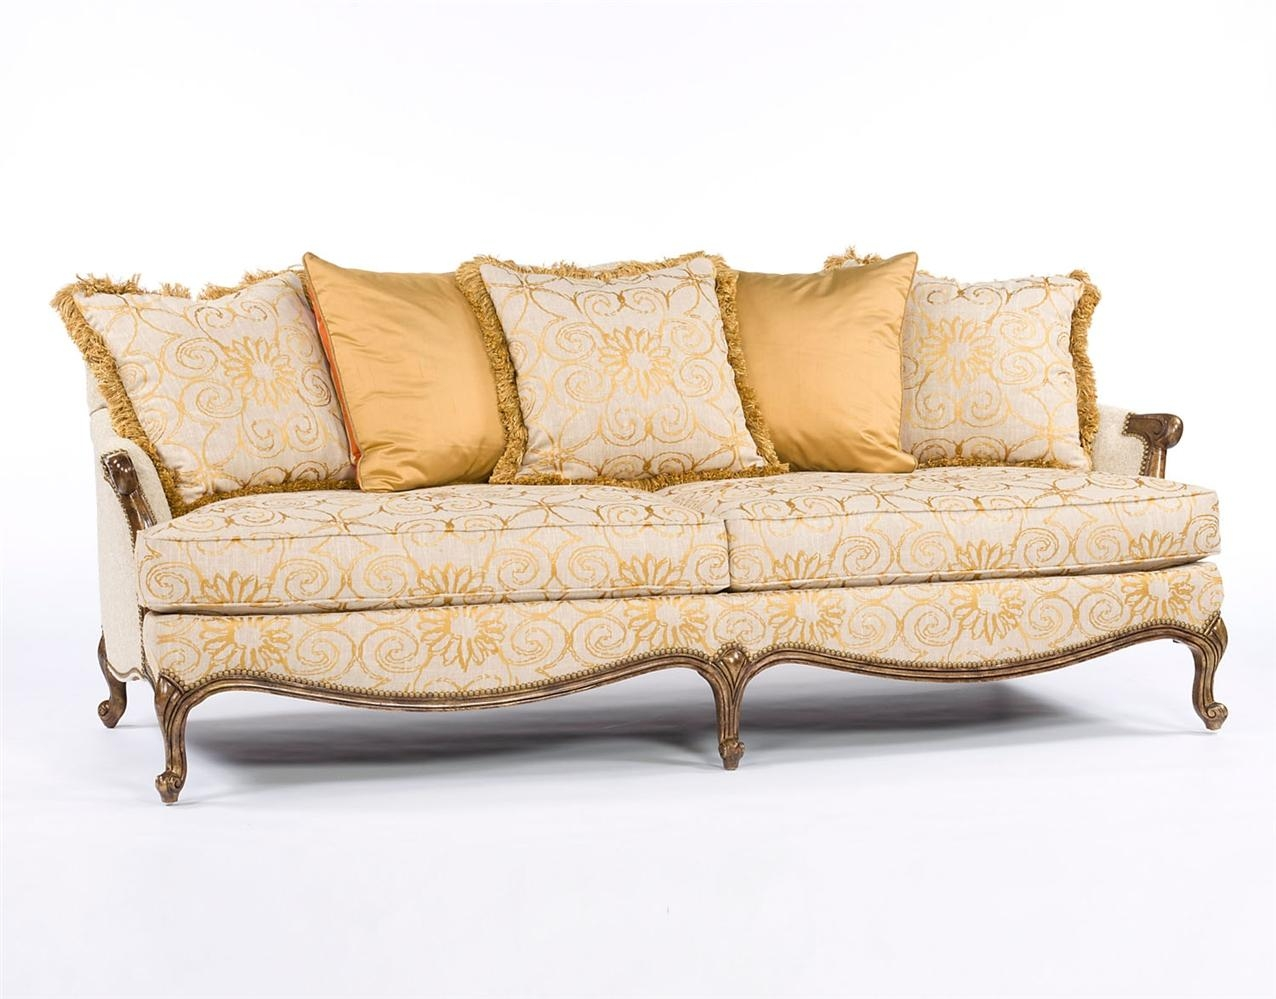 French Sofa Styles French Sofa Provincial Tufted Upholstered Louis Thesofa